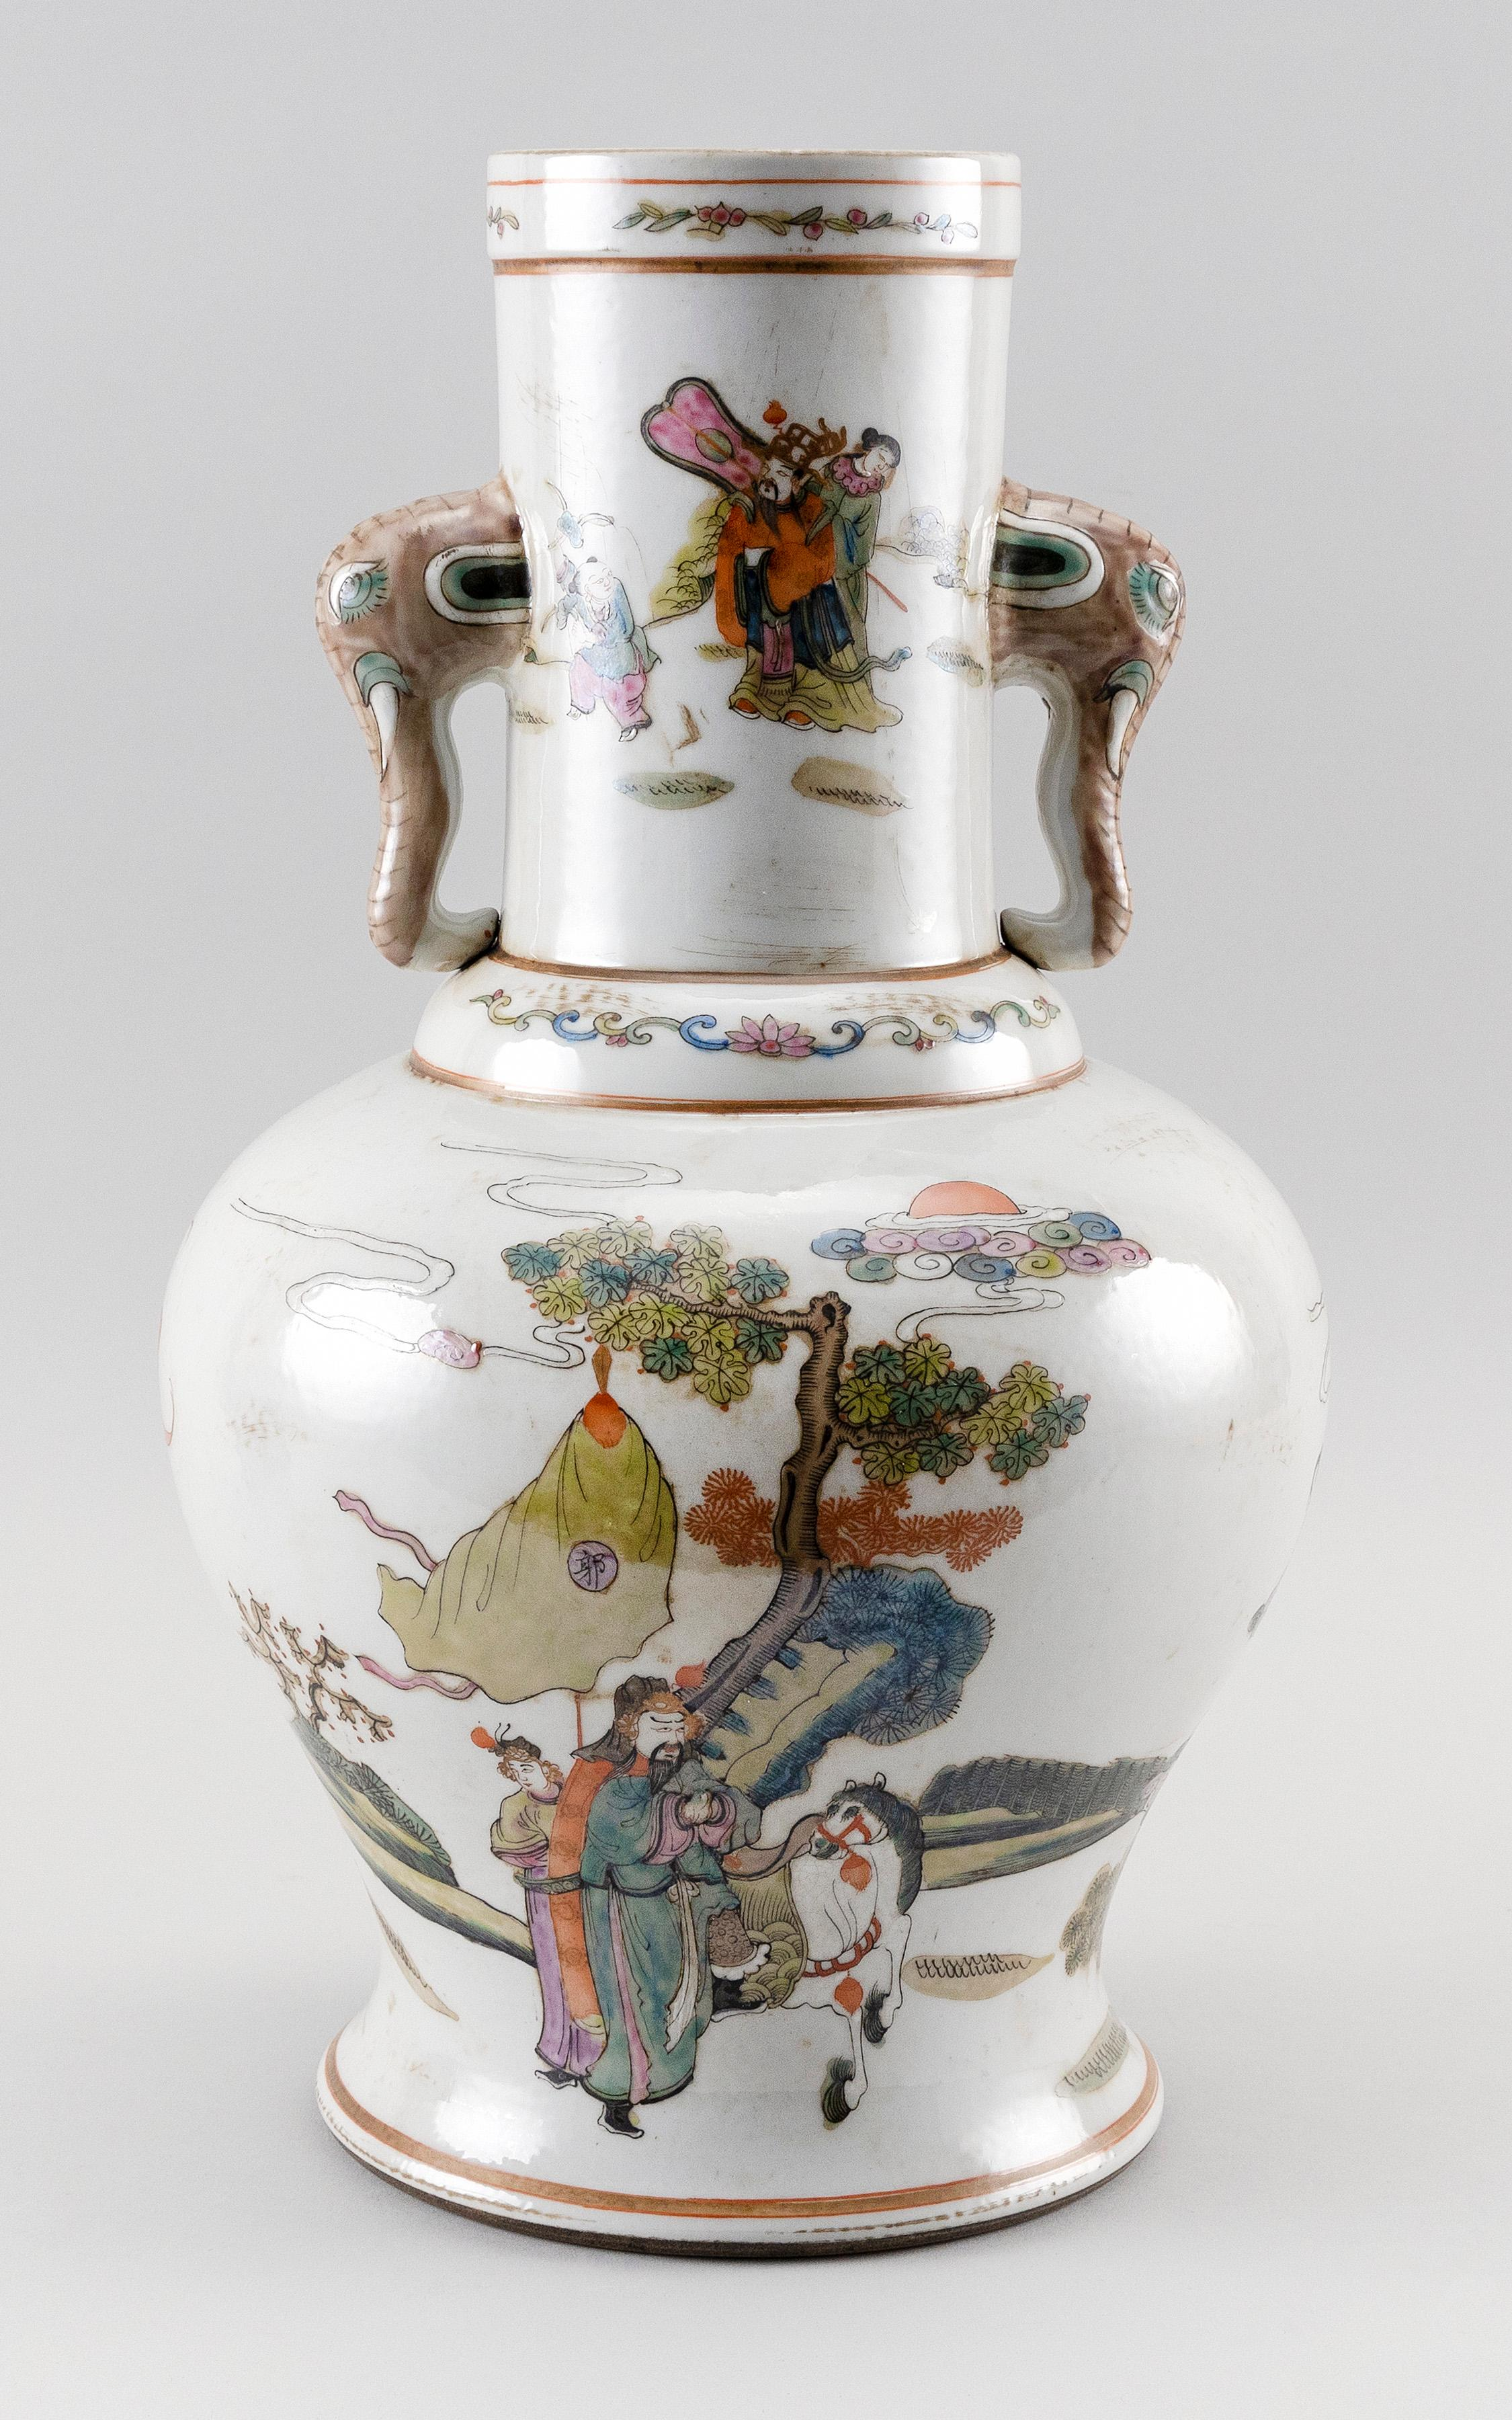 CHINESE FAMILLE VERTE PORCELAIN VASE In baluster form, with elephant's-head handles on stem and figural procession and bat decoratio..